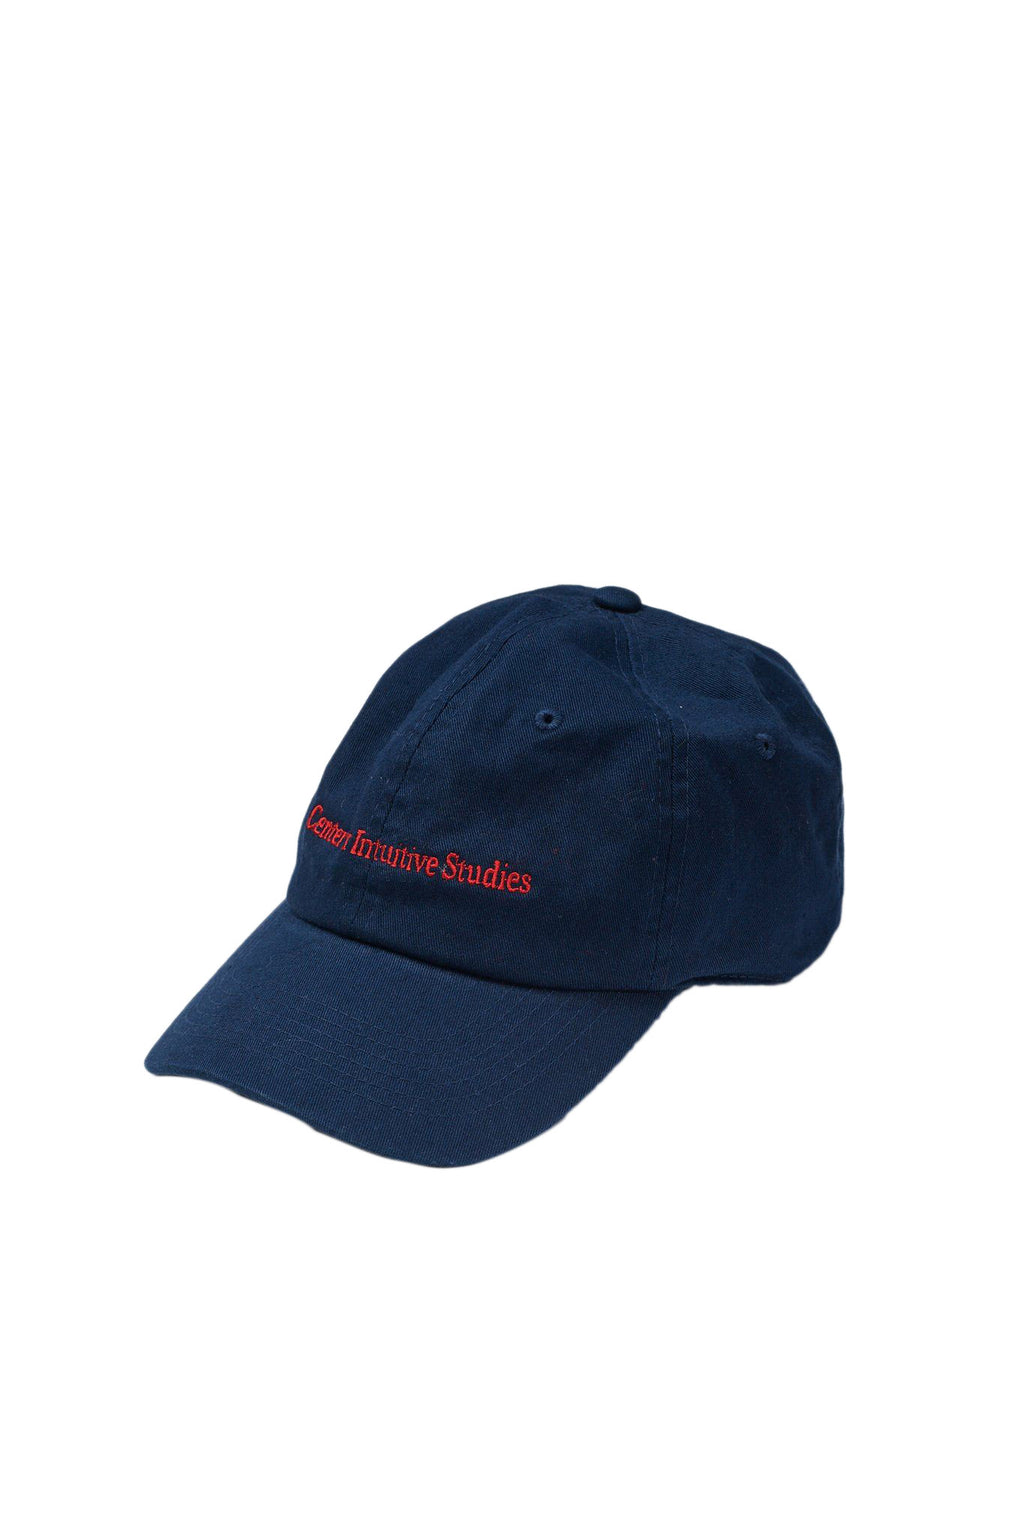 Navy & Red Center for Intuitive Studies Hat